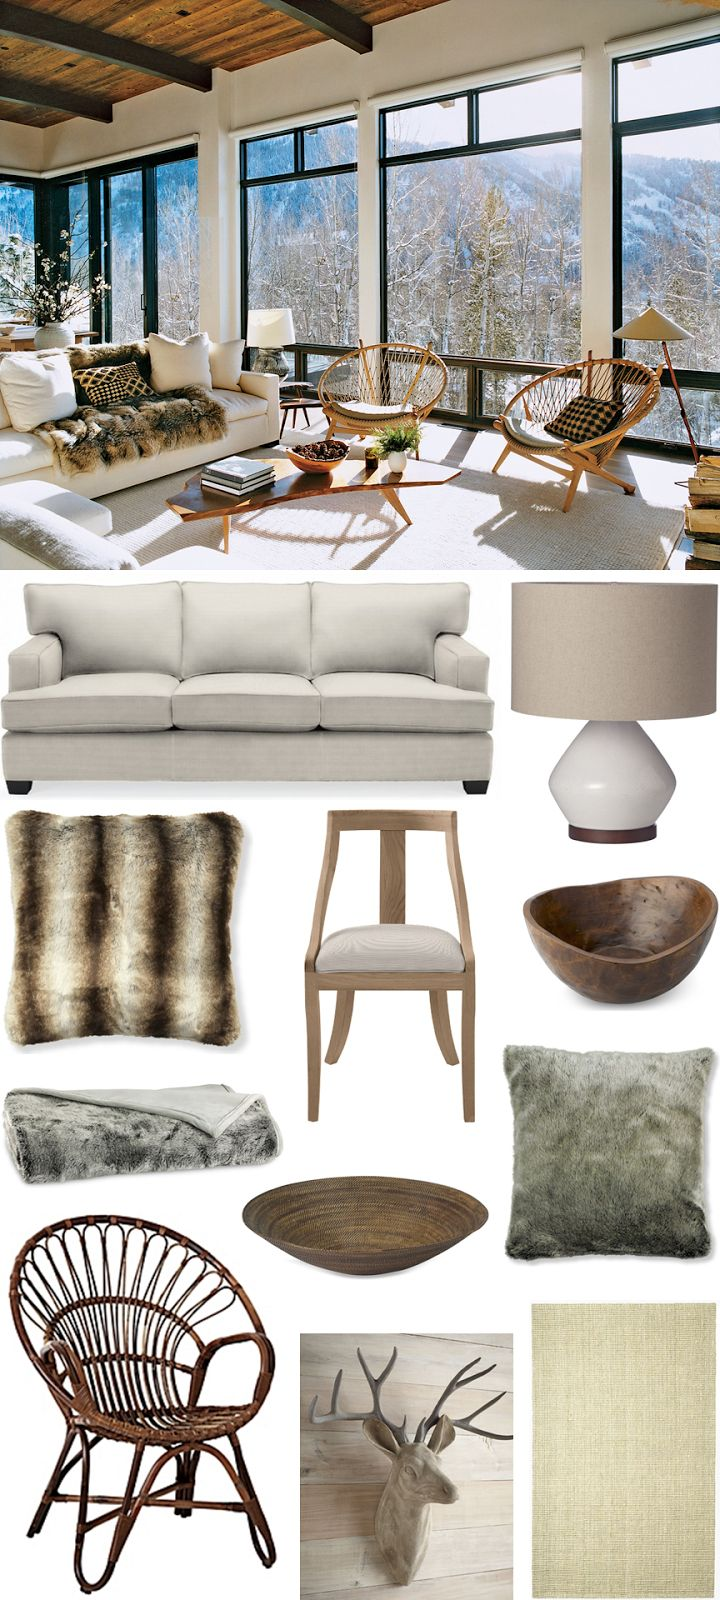 CHIC COASTAL LIVING: GET THE LOOK: Aerin Lauder's Cozy Aspen Ski Chalet @Williams-Sonoma Home  @Serena &  Lily